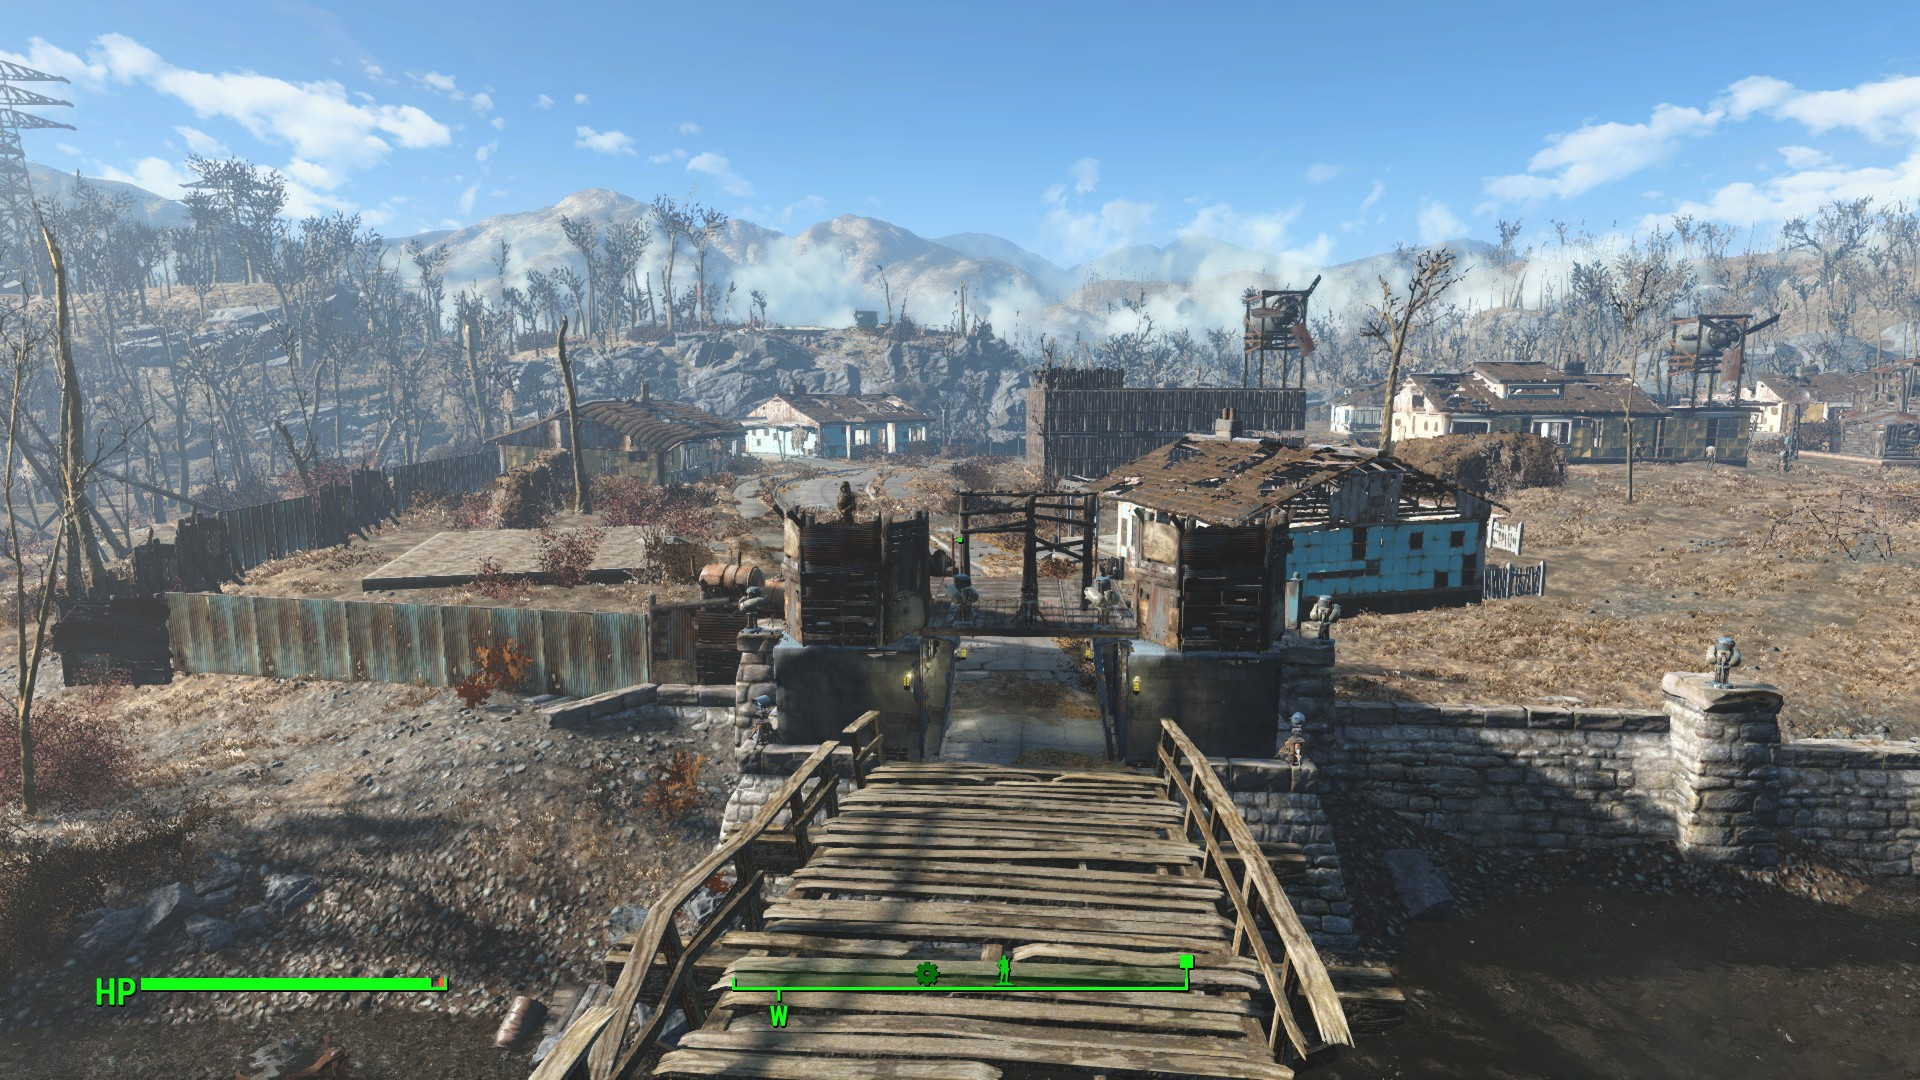 How To Use Wall Lights Fallout 4 : Your Fallout 4 Settlements, Show Them To Me - Page 2 - Player Attack